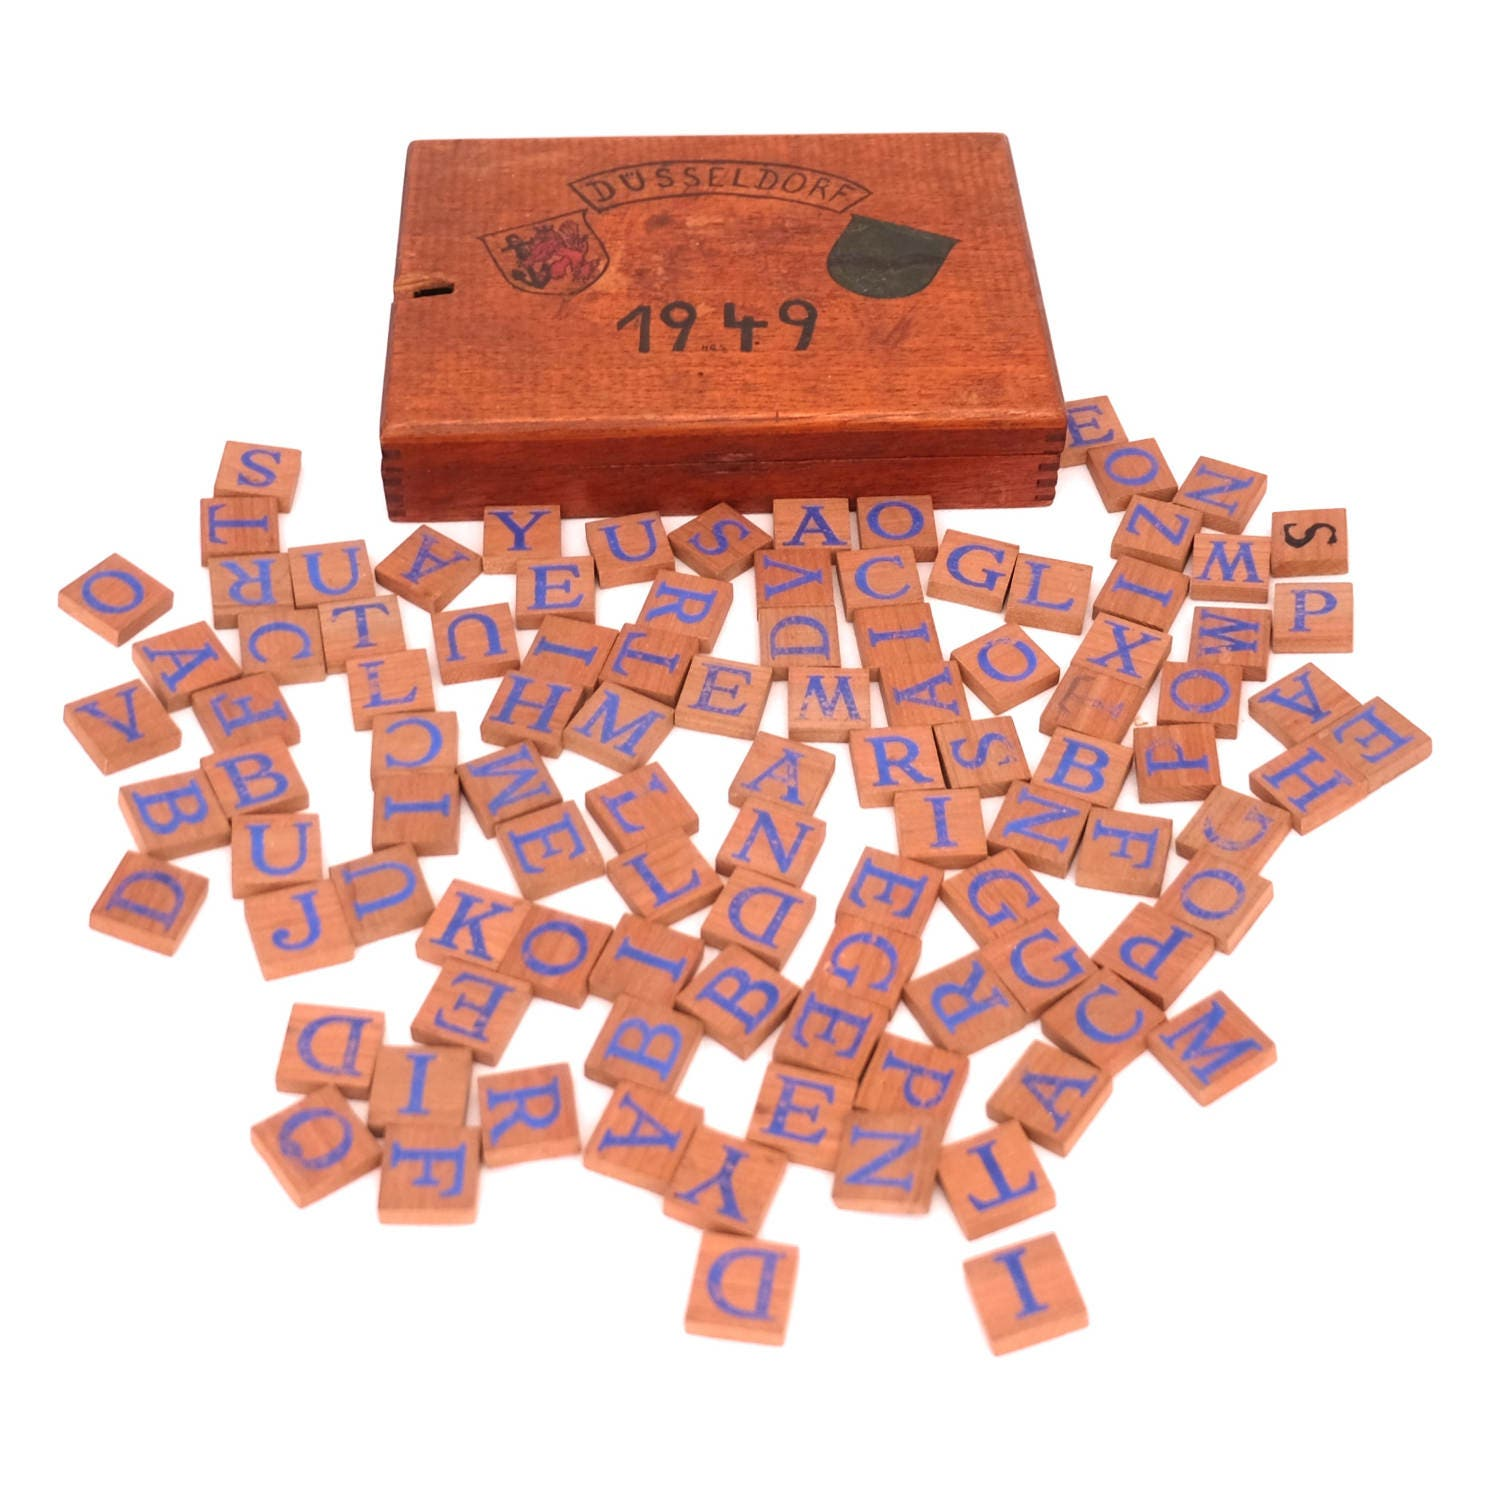 Vintage Wooden Letters Boxed Set of Wooden Letters German Game Alphabet Tile Game Pieces Wooden Scrabble Tiles Word Game Letter Game